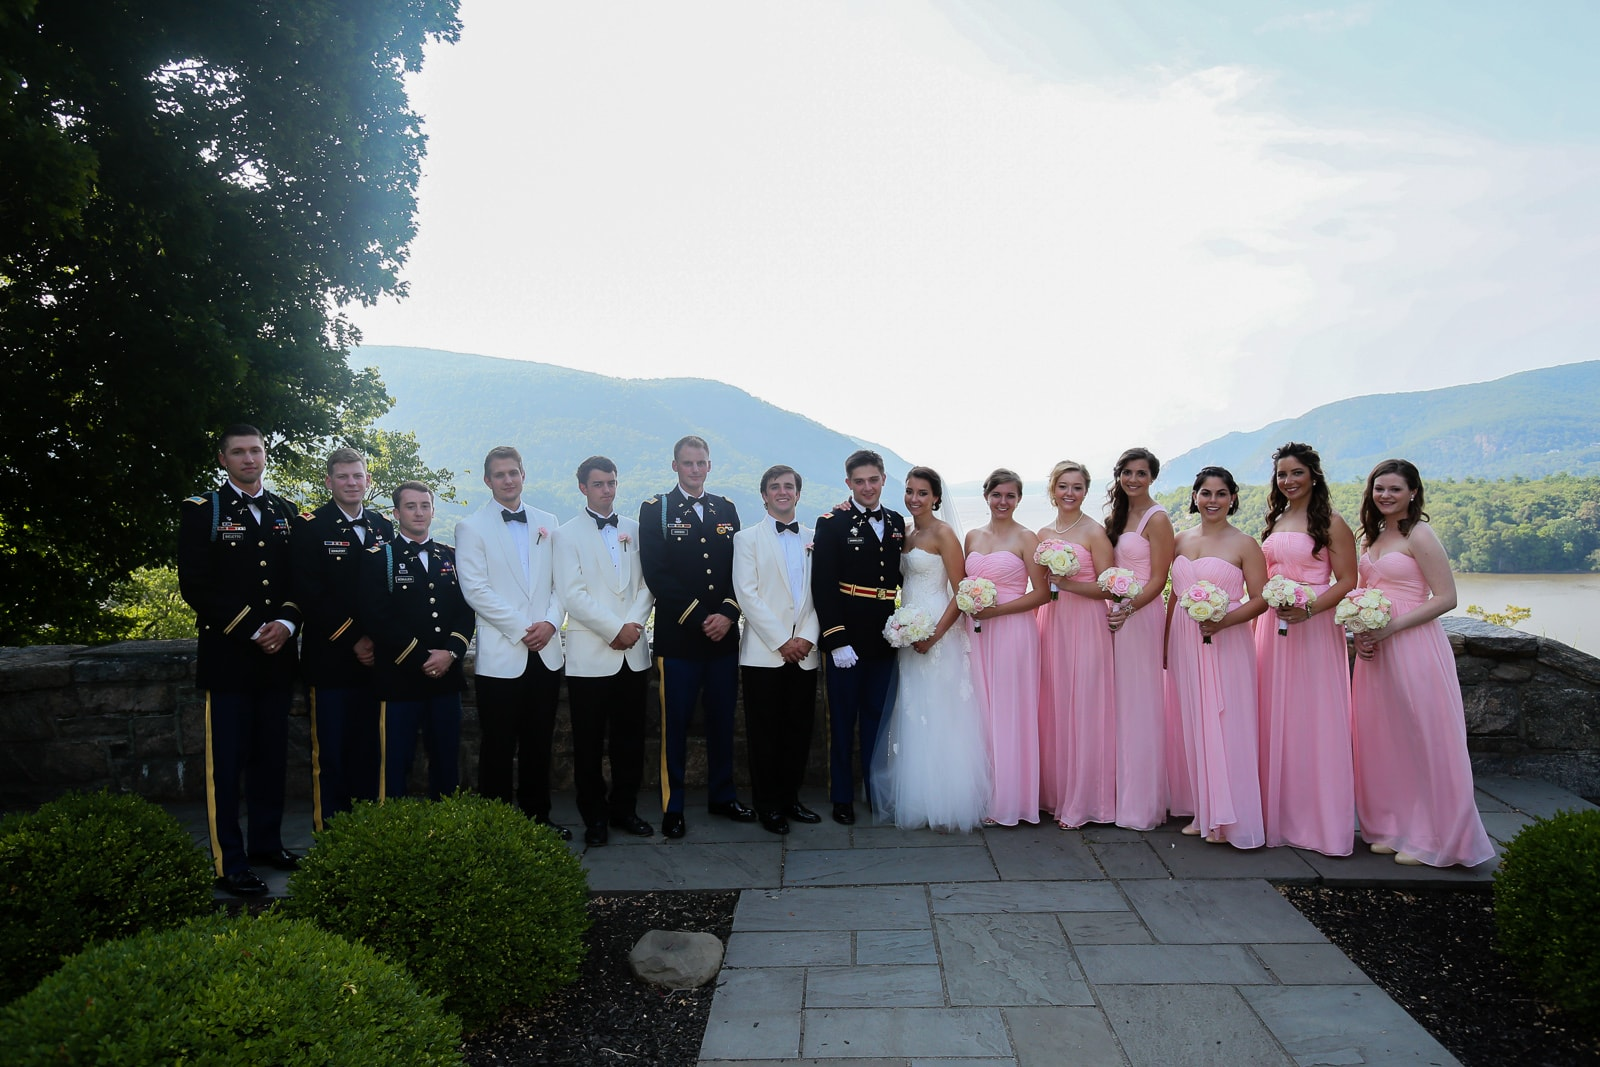 Military Bridal party wedding picture at Trophy Point West Point NY